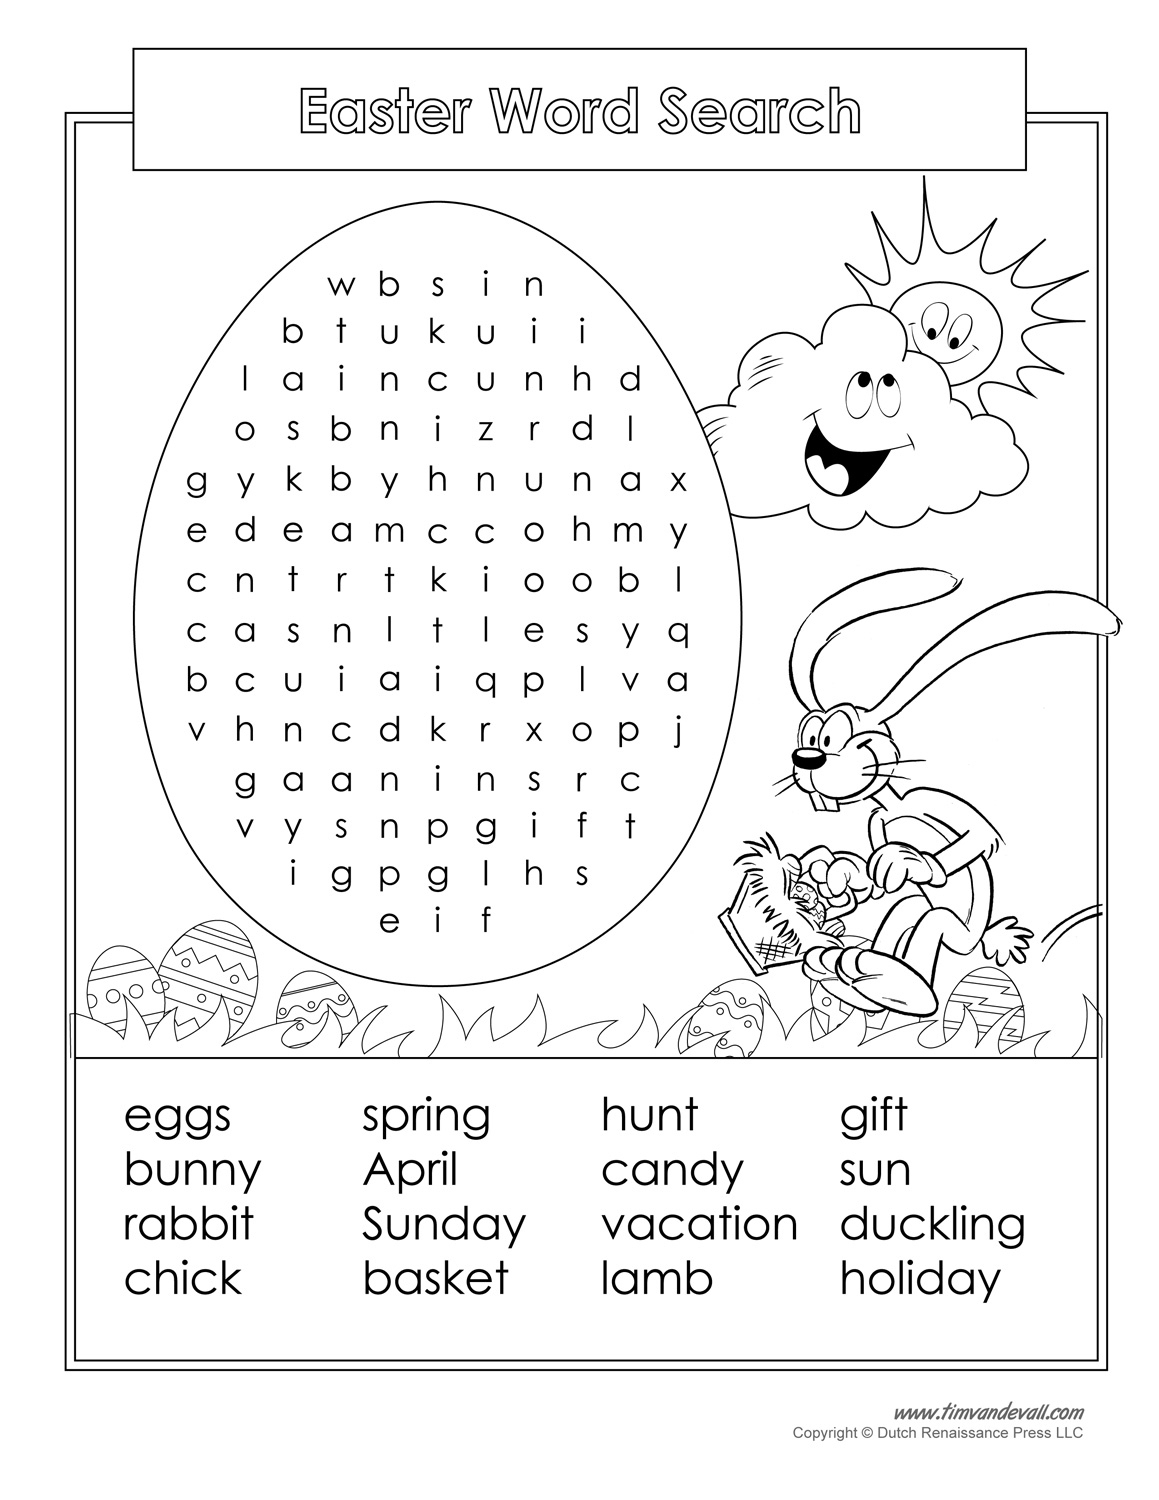 16 Printable Easter Word Search Puzzles | Kittybabylove - Free - Printable Easter Puzzles